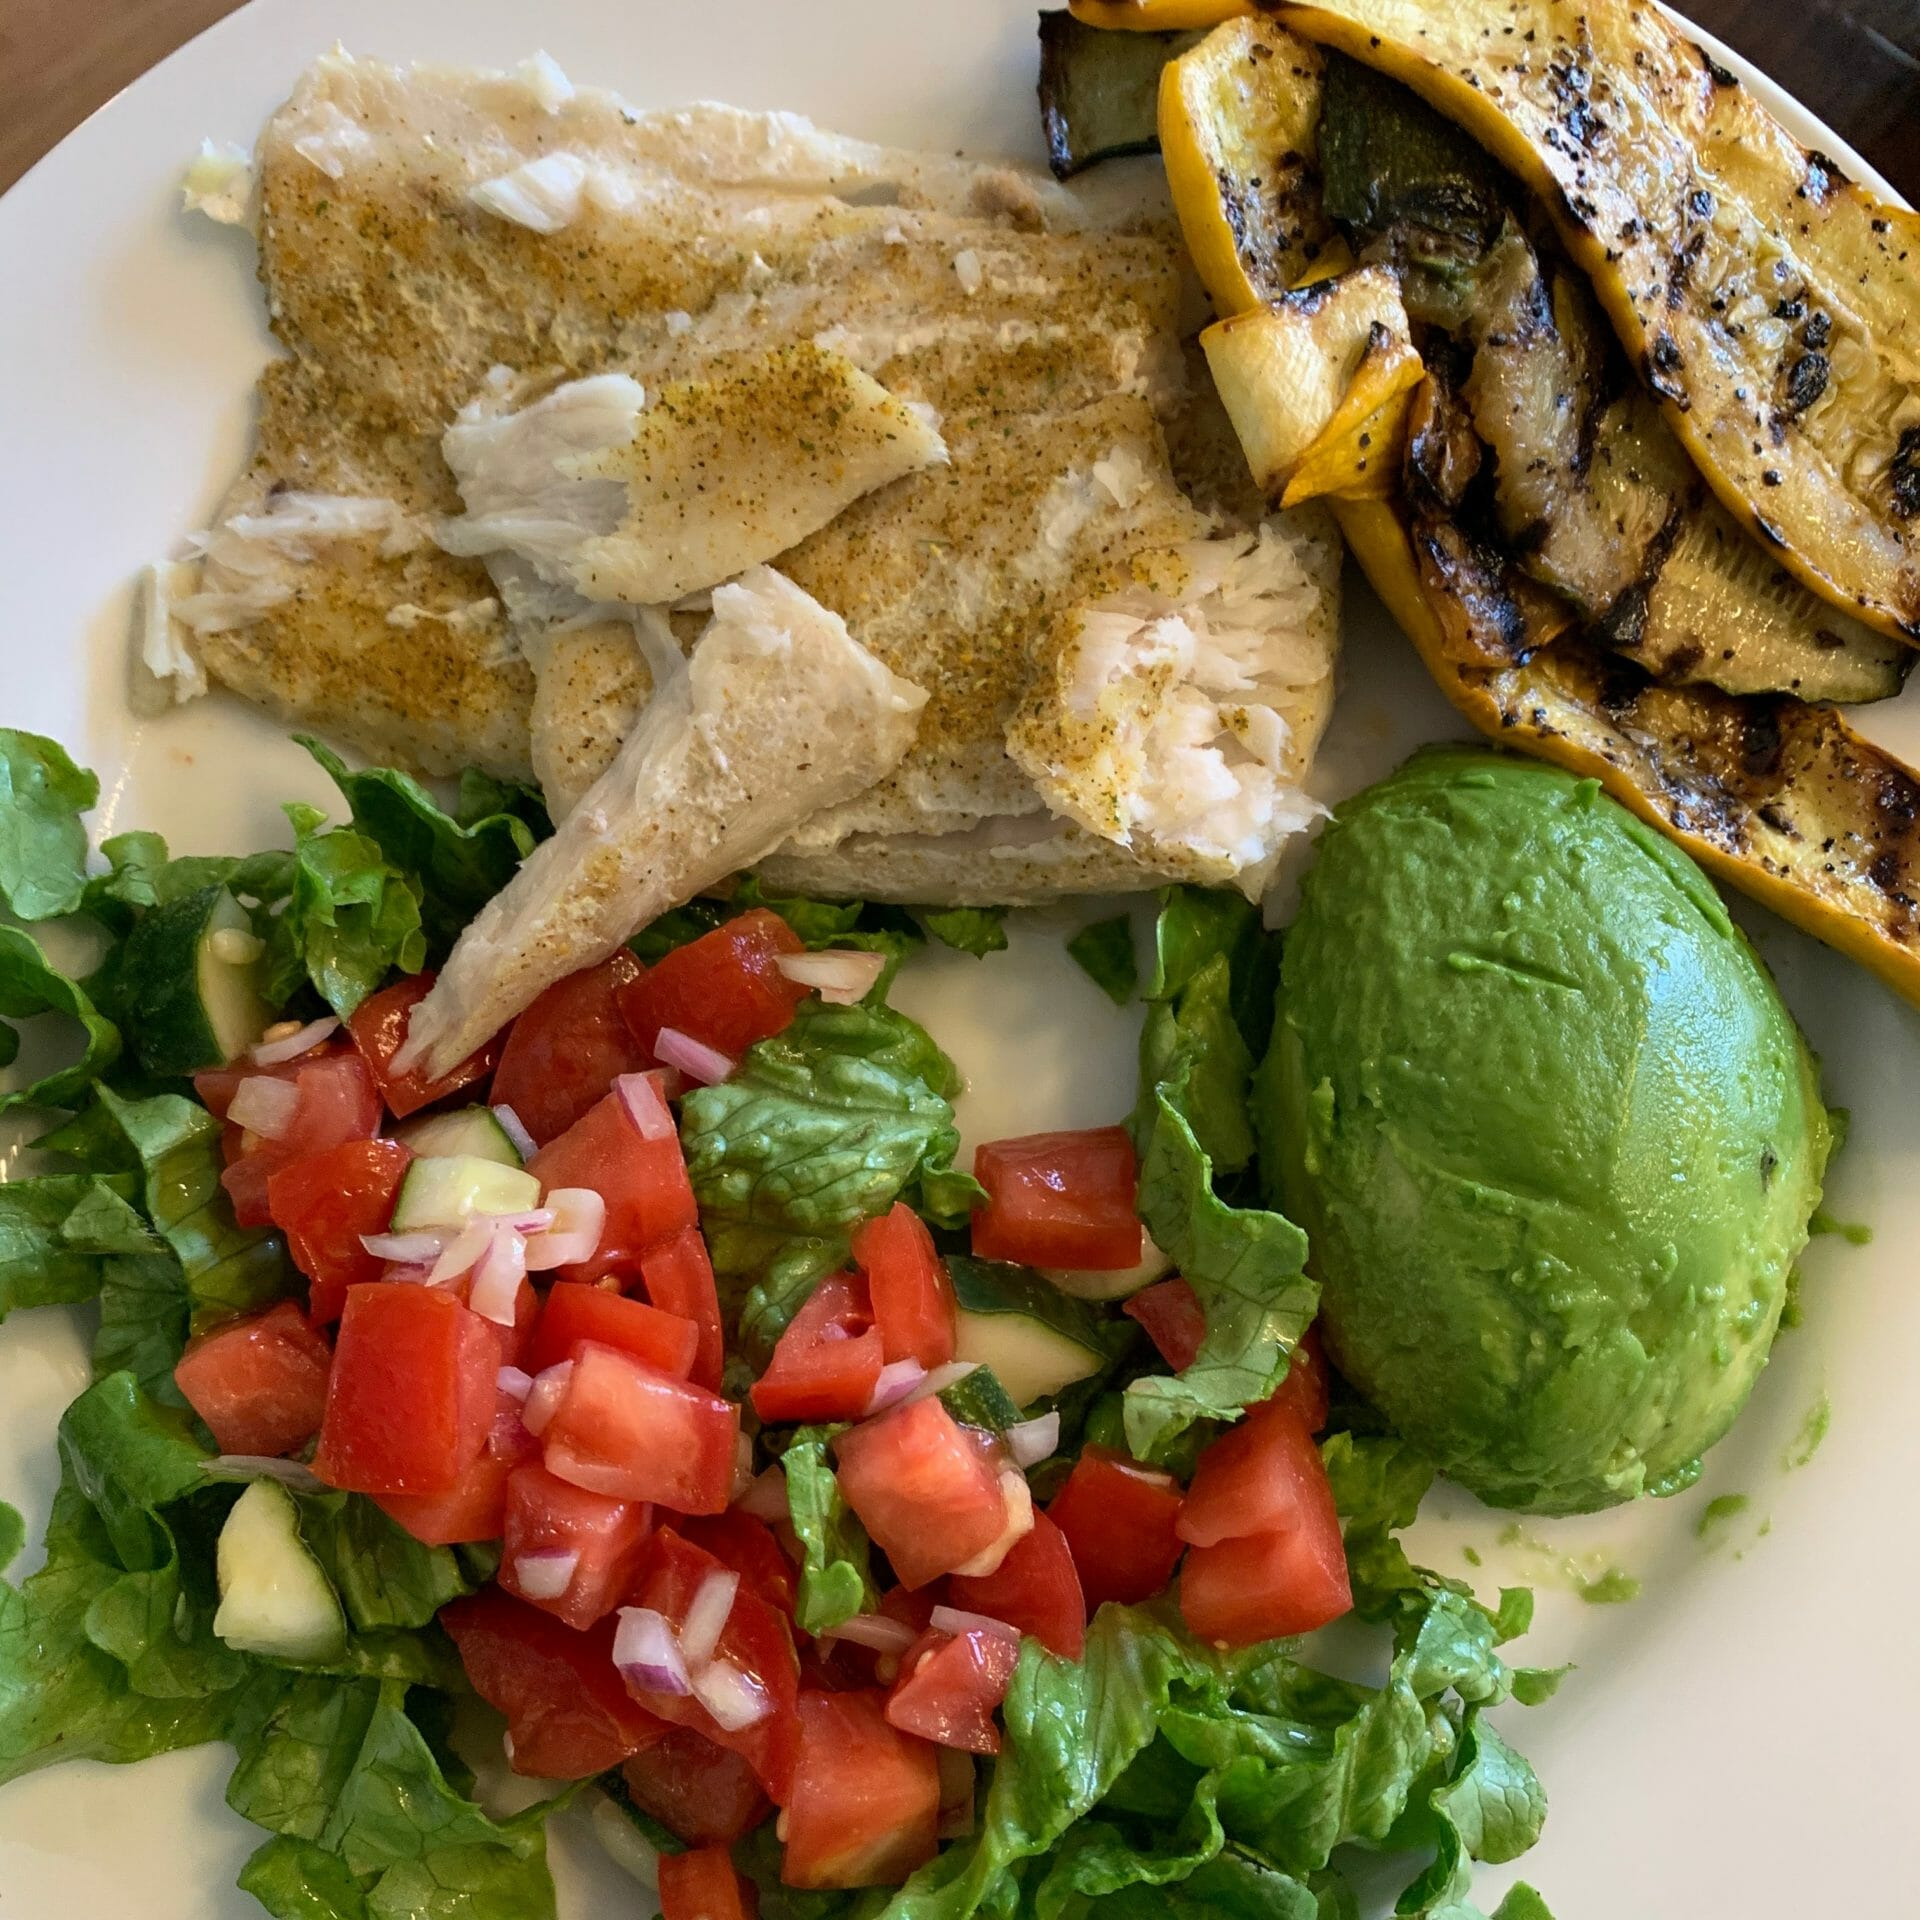 Steamed fish with grilled zucchini, avocado, lettuce, tomatoes, cucumber and onions